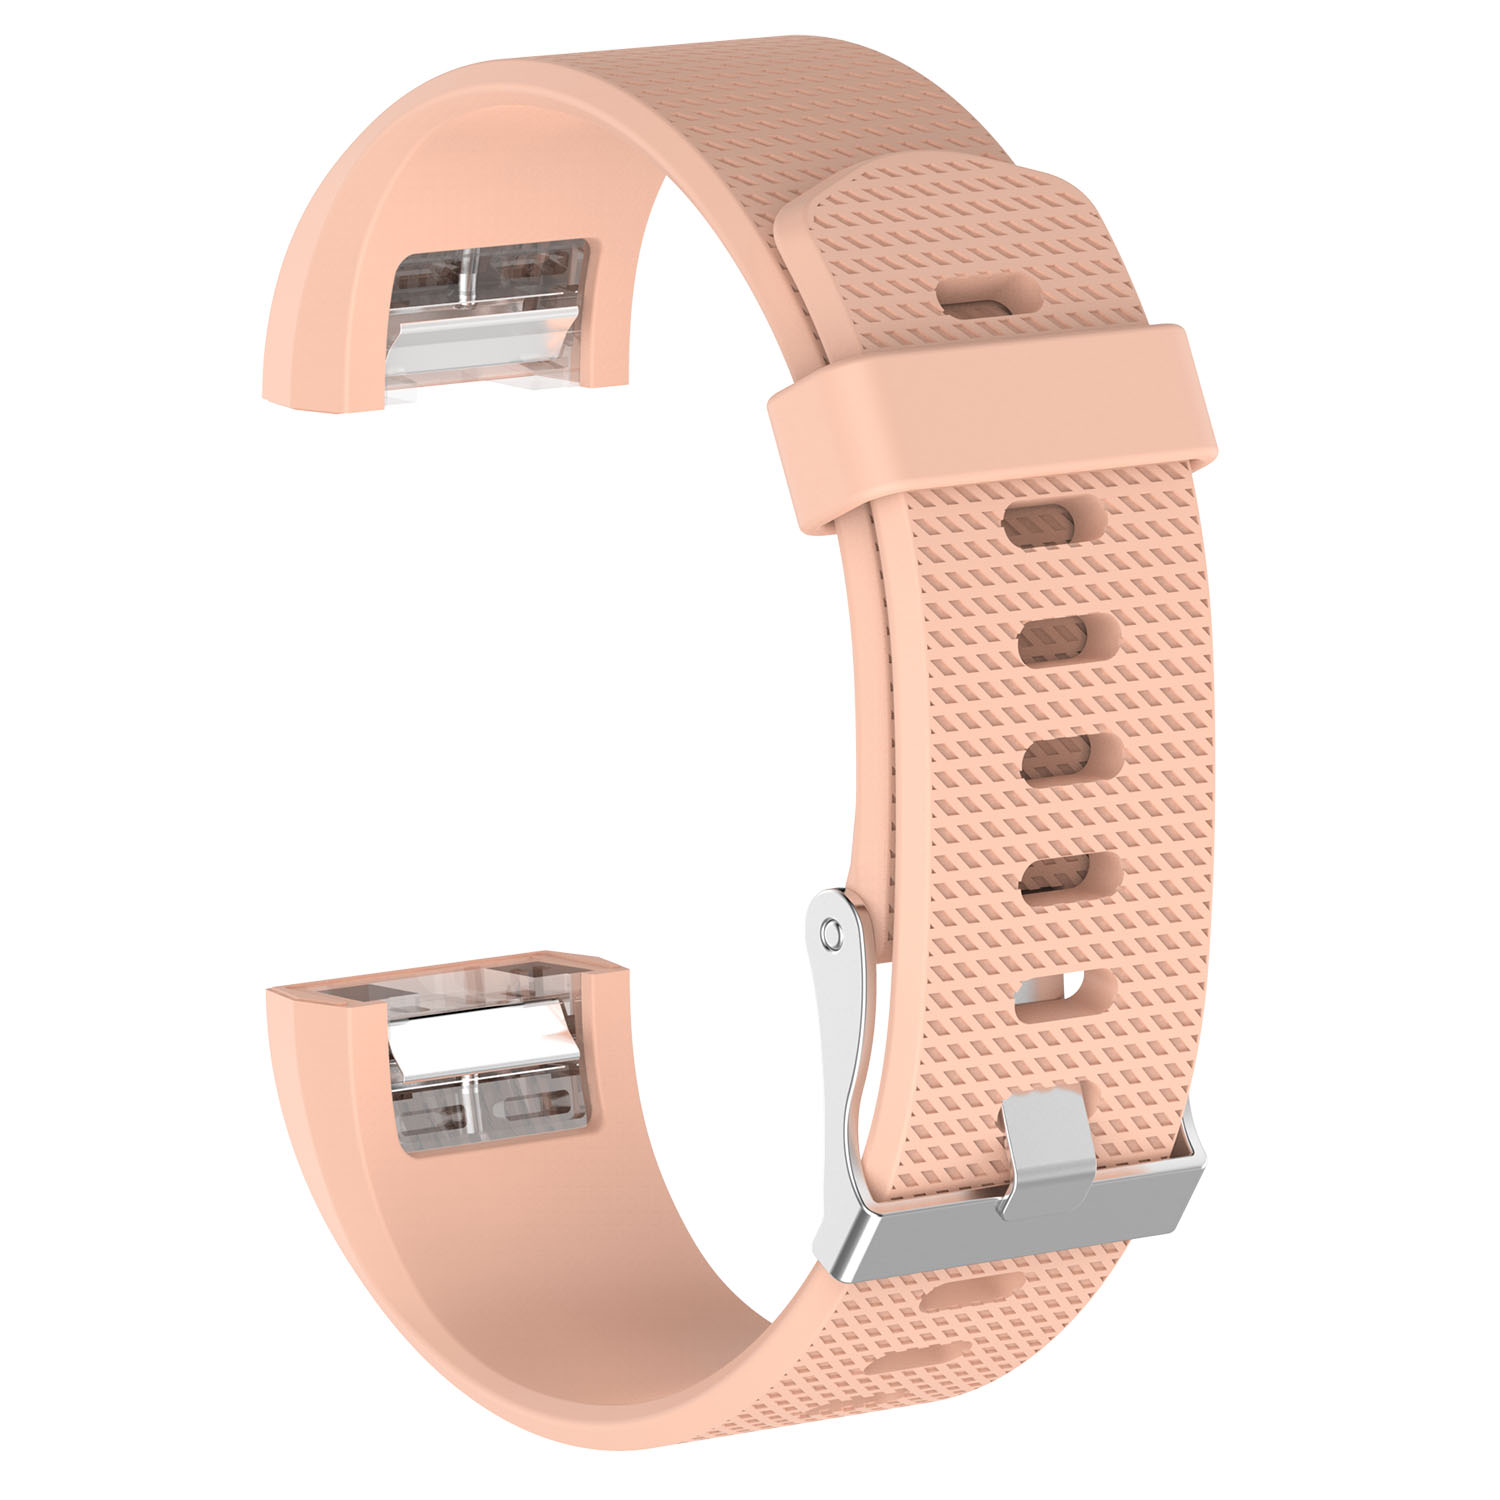 Replacement-Silicone-Wristband-Watch-Strap-Bands-Bracelet-For-Fitbit-Charge-2 thumbnail 54